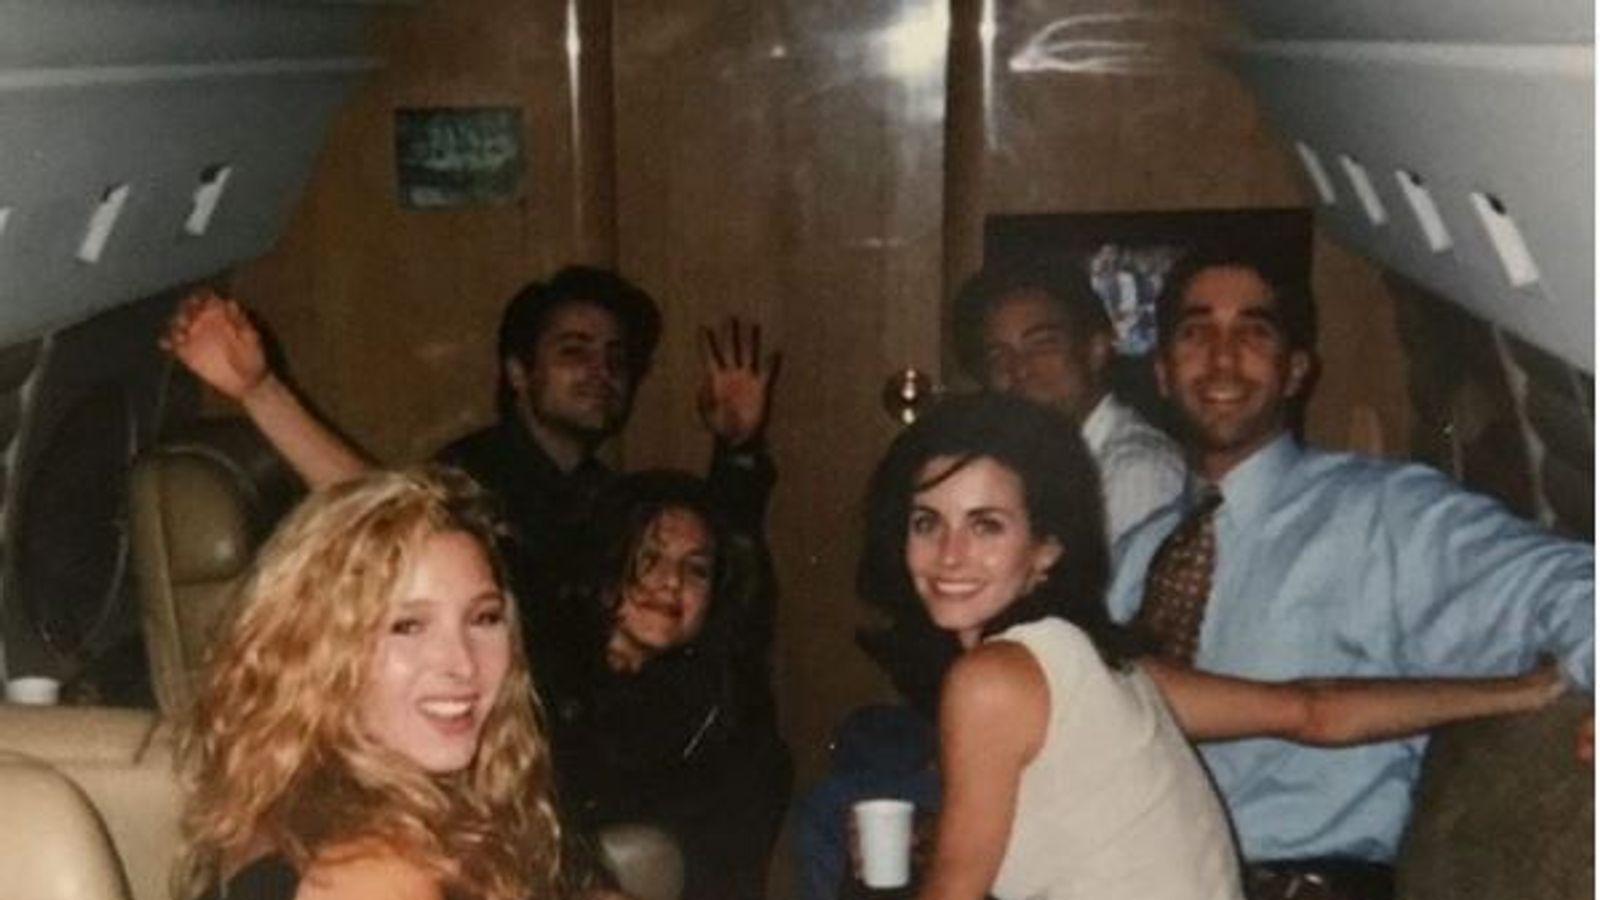 Courtney Cox shares early Friends photo from before show aired